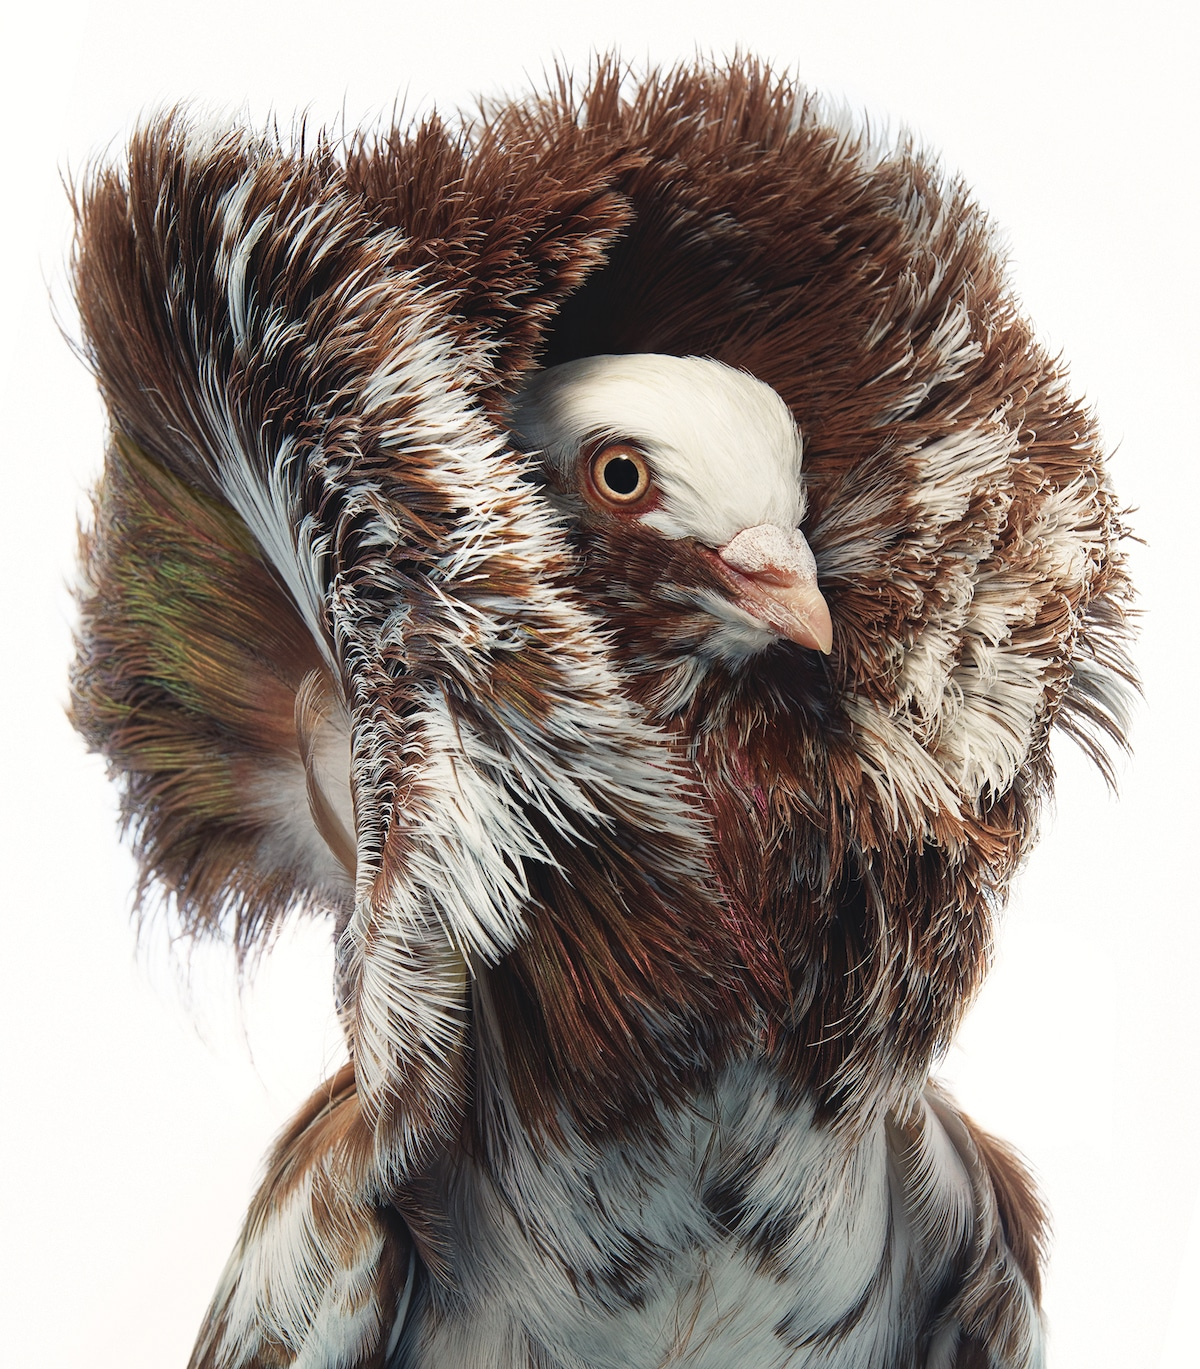 Jacobian Bird Portrait by Tim Flach